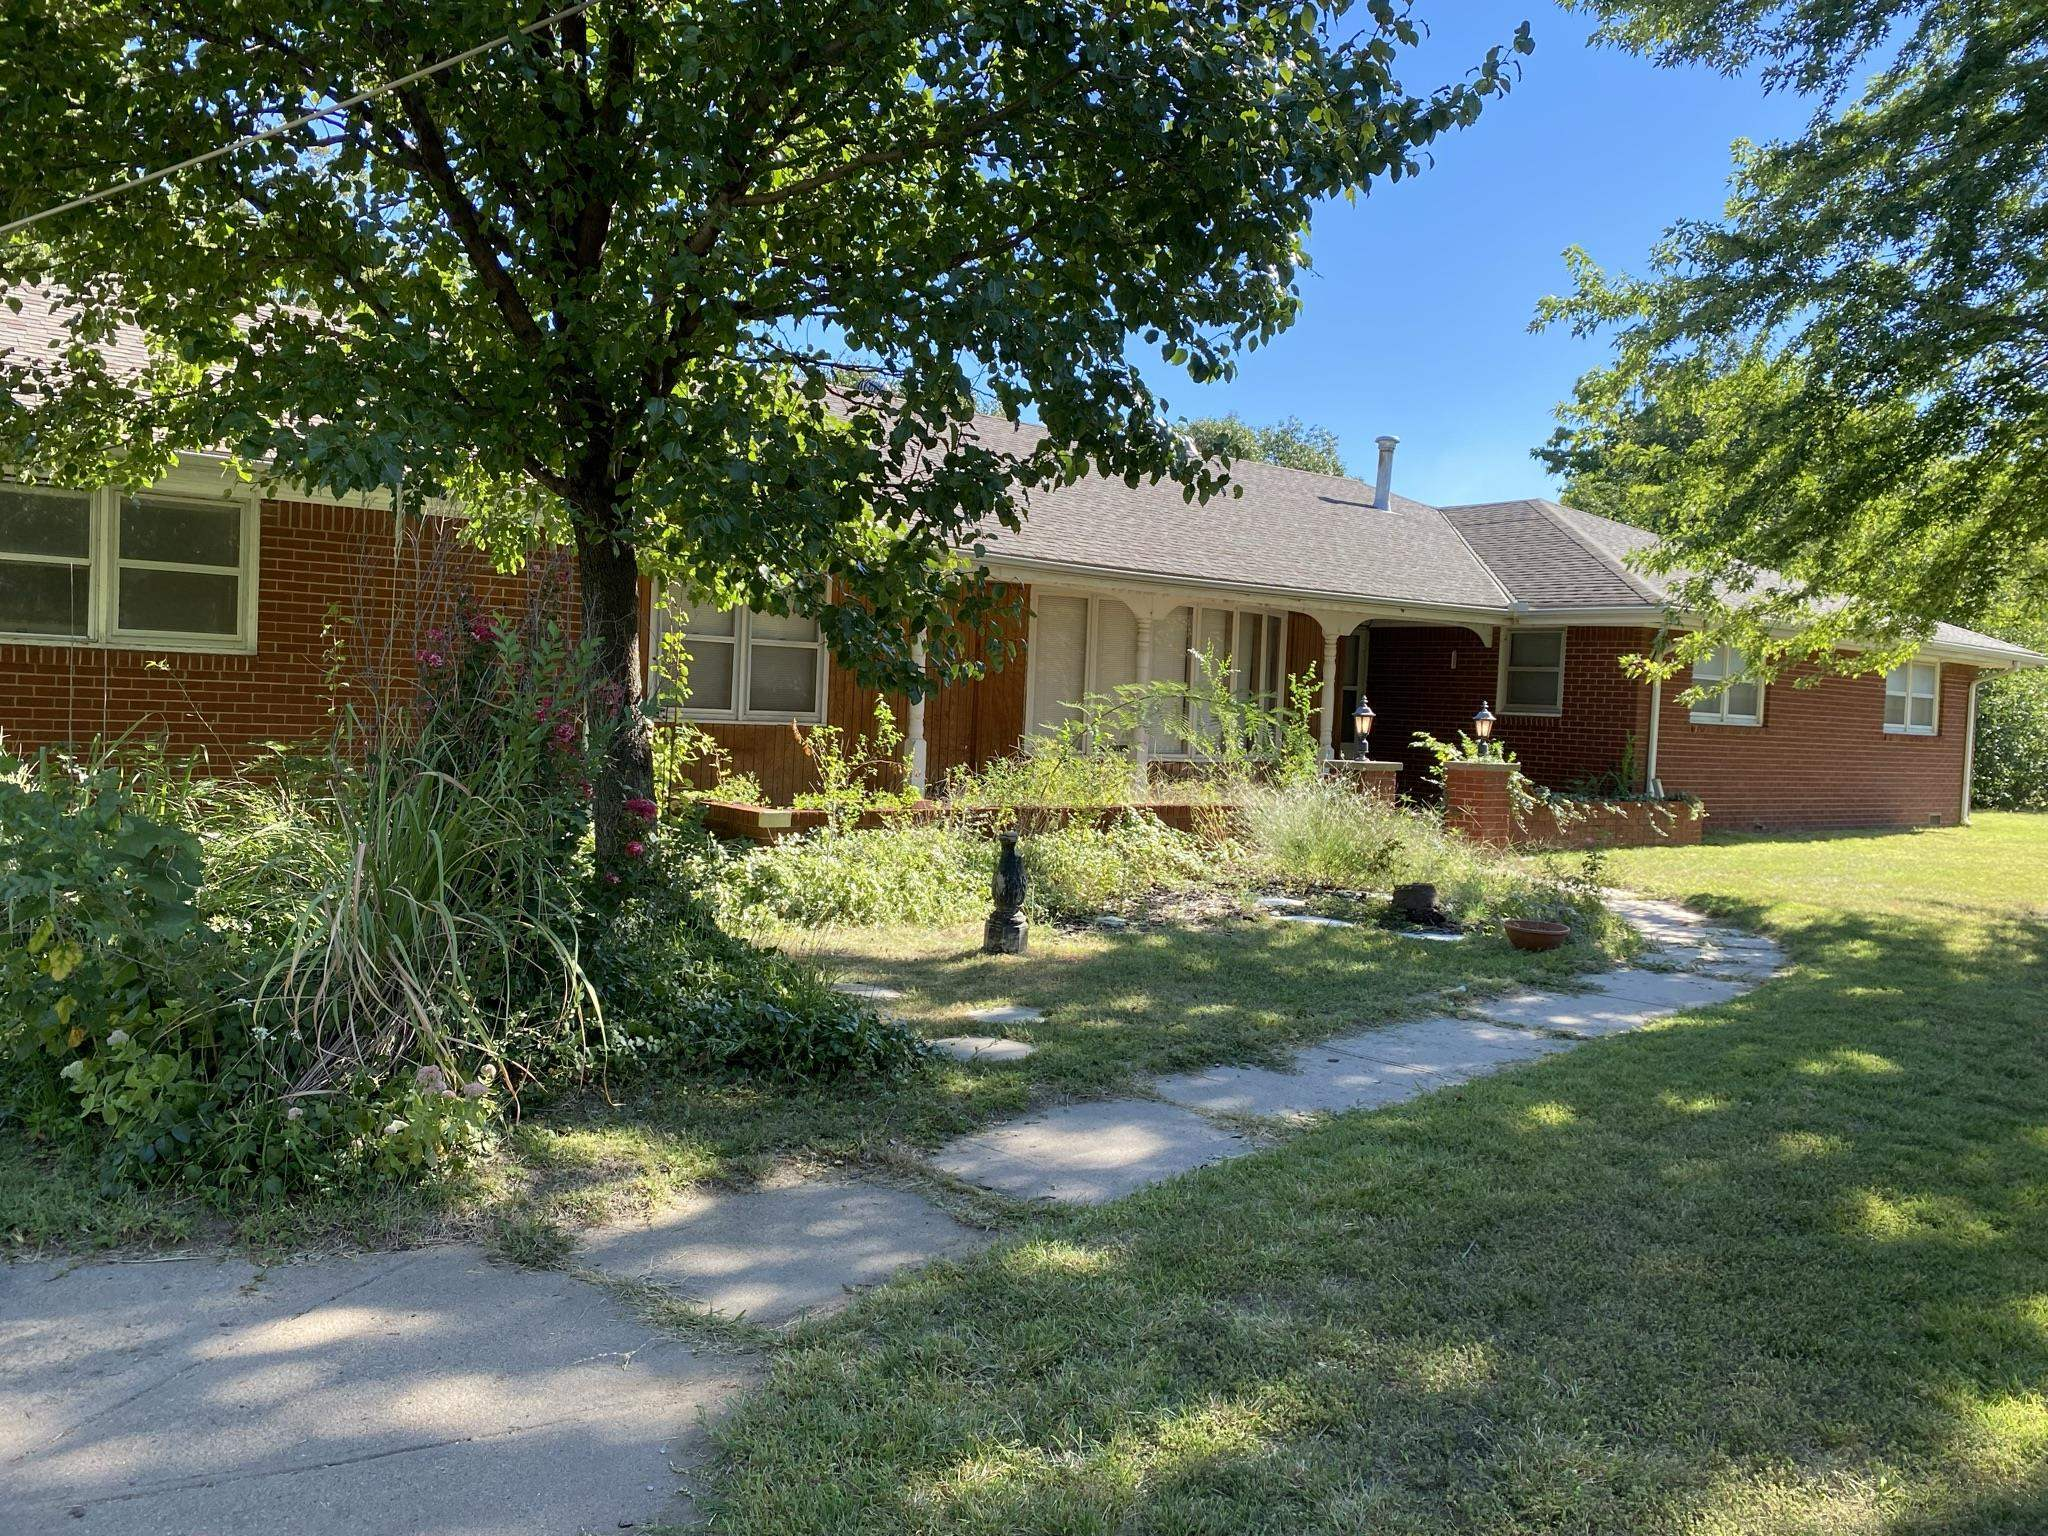 This is a rare find. Over 2,200 sq ft ranch on over 1/2 acre corner lot. Open house plan with master bathroom. Sellers are having an Estate Sale from 9/16-9/18. NO Showings until 9/19. But you are more then welcome to attend the estate sale.